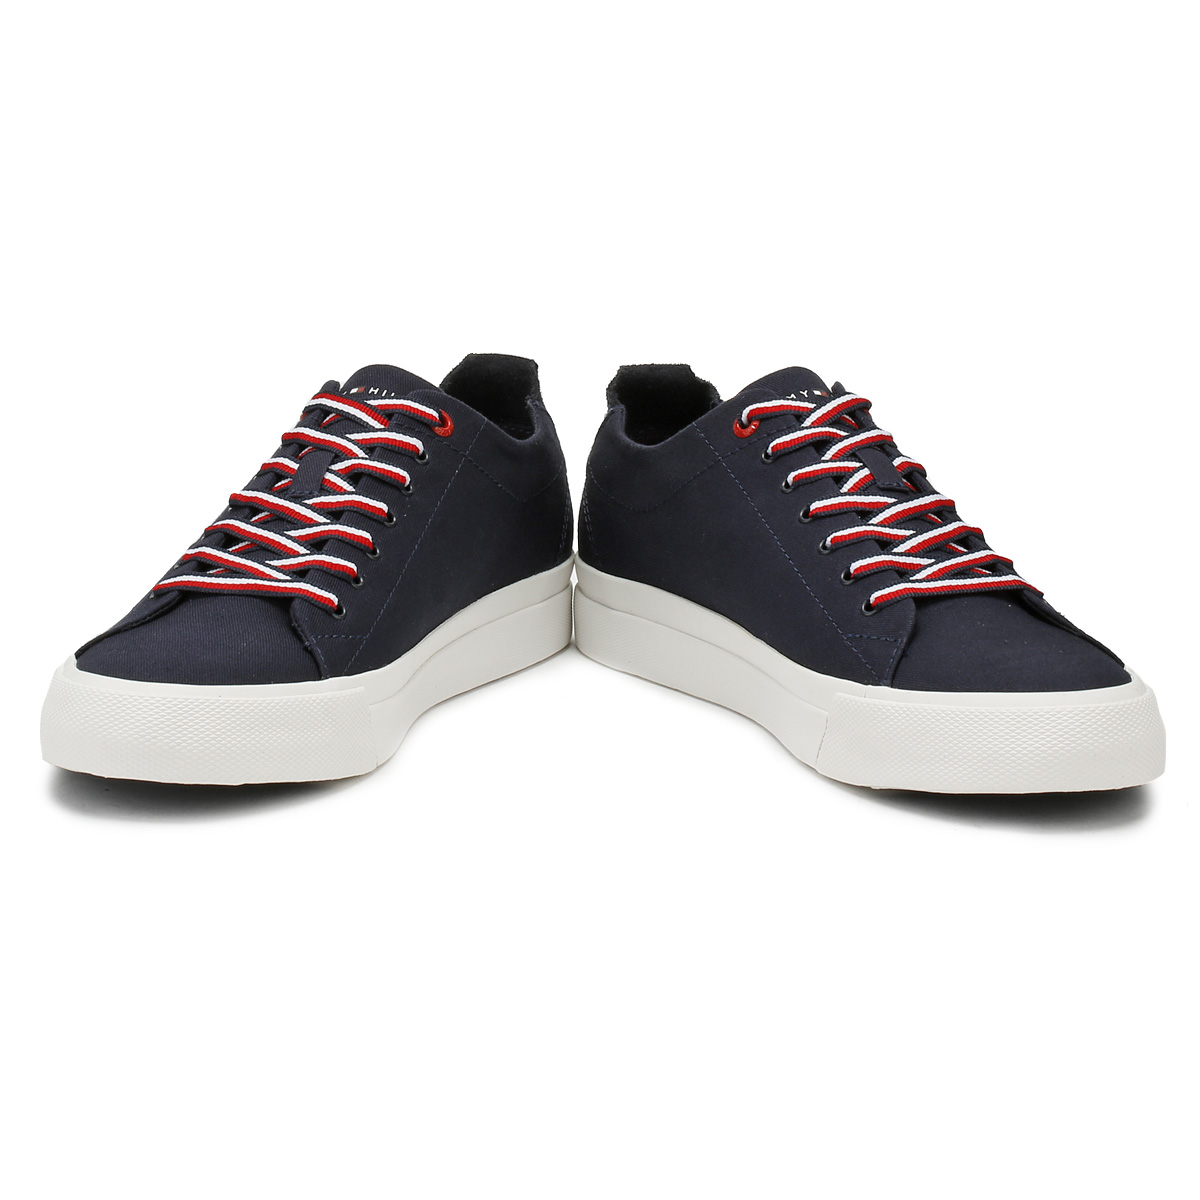 cbece7a98 Details about Tommy Hilfiger Mens Midnight Blue Dino 1D Trainers Lace Up  Sport Casual Shoes